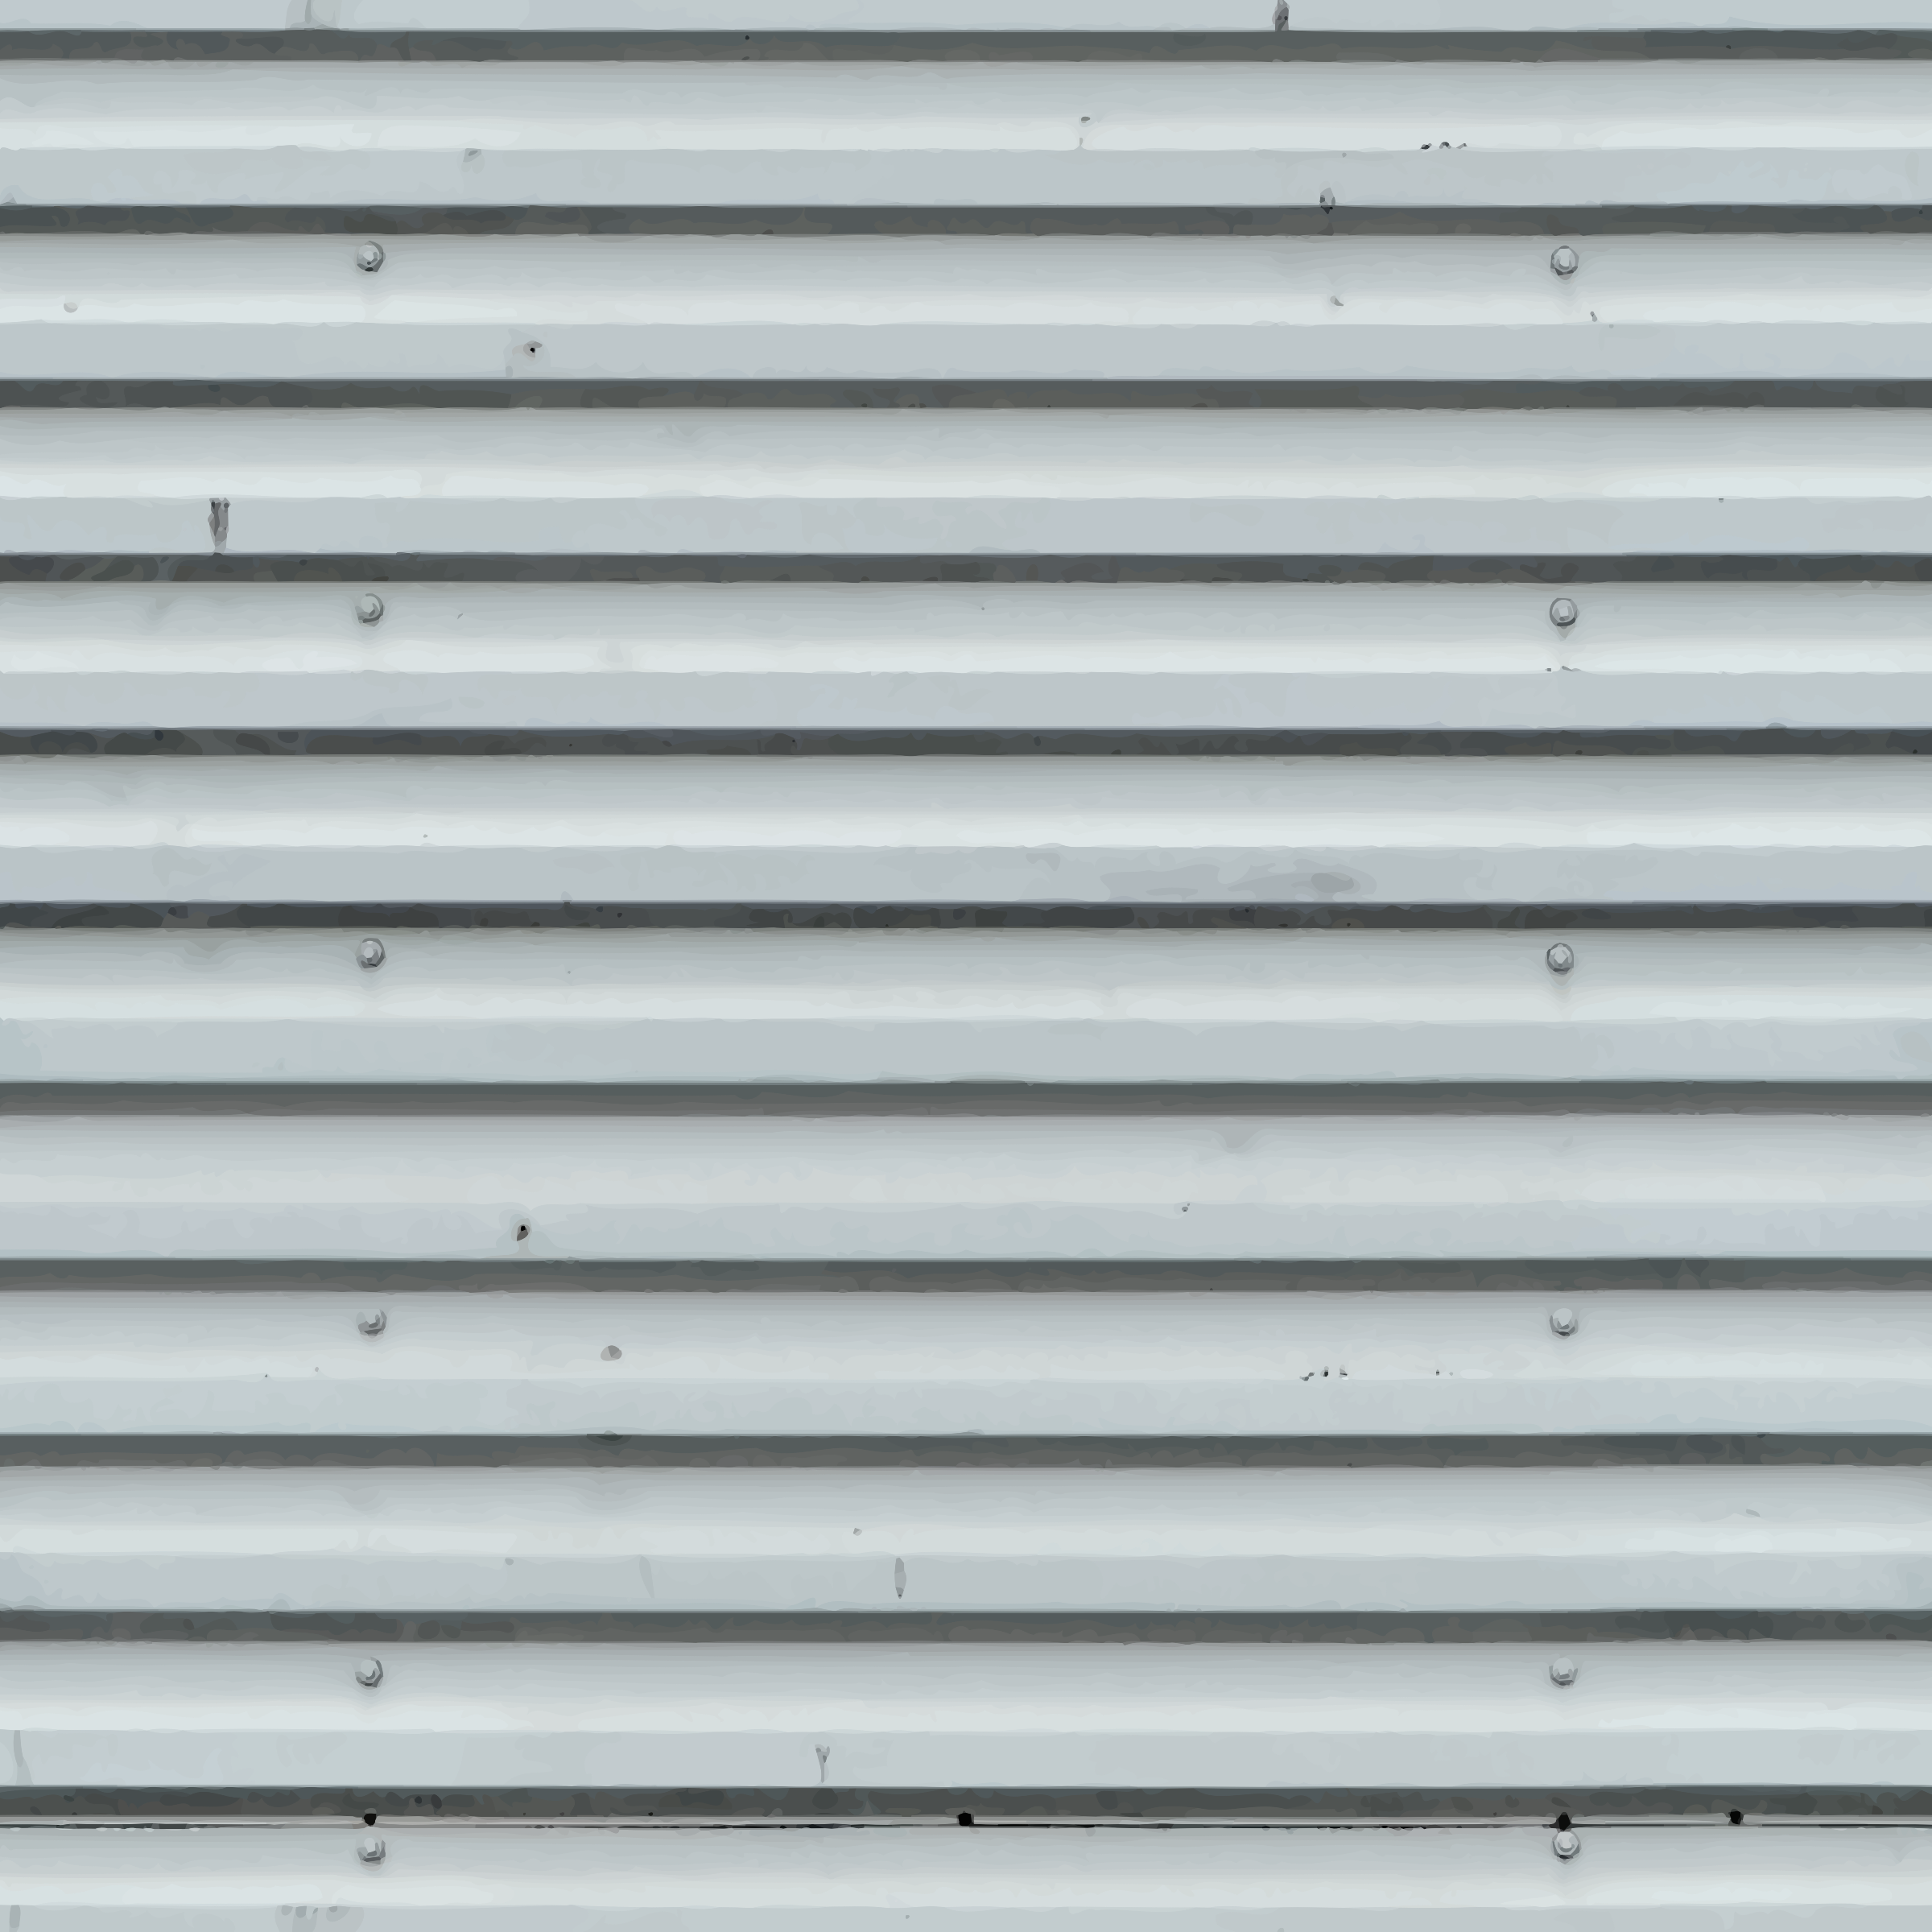 Corrugated metal 10 by Firkin